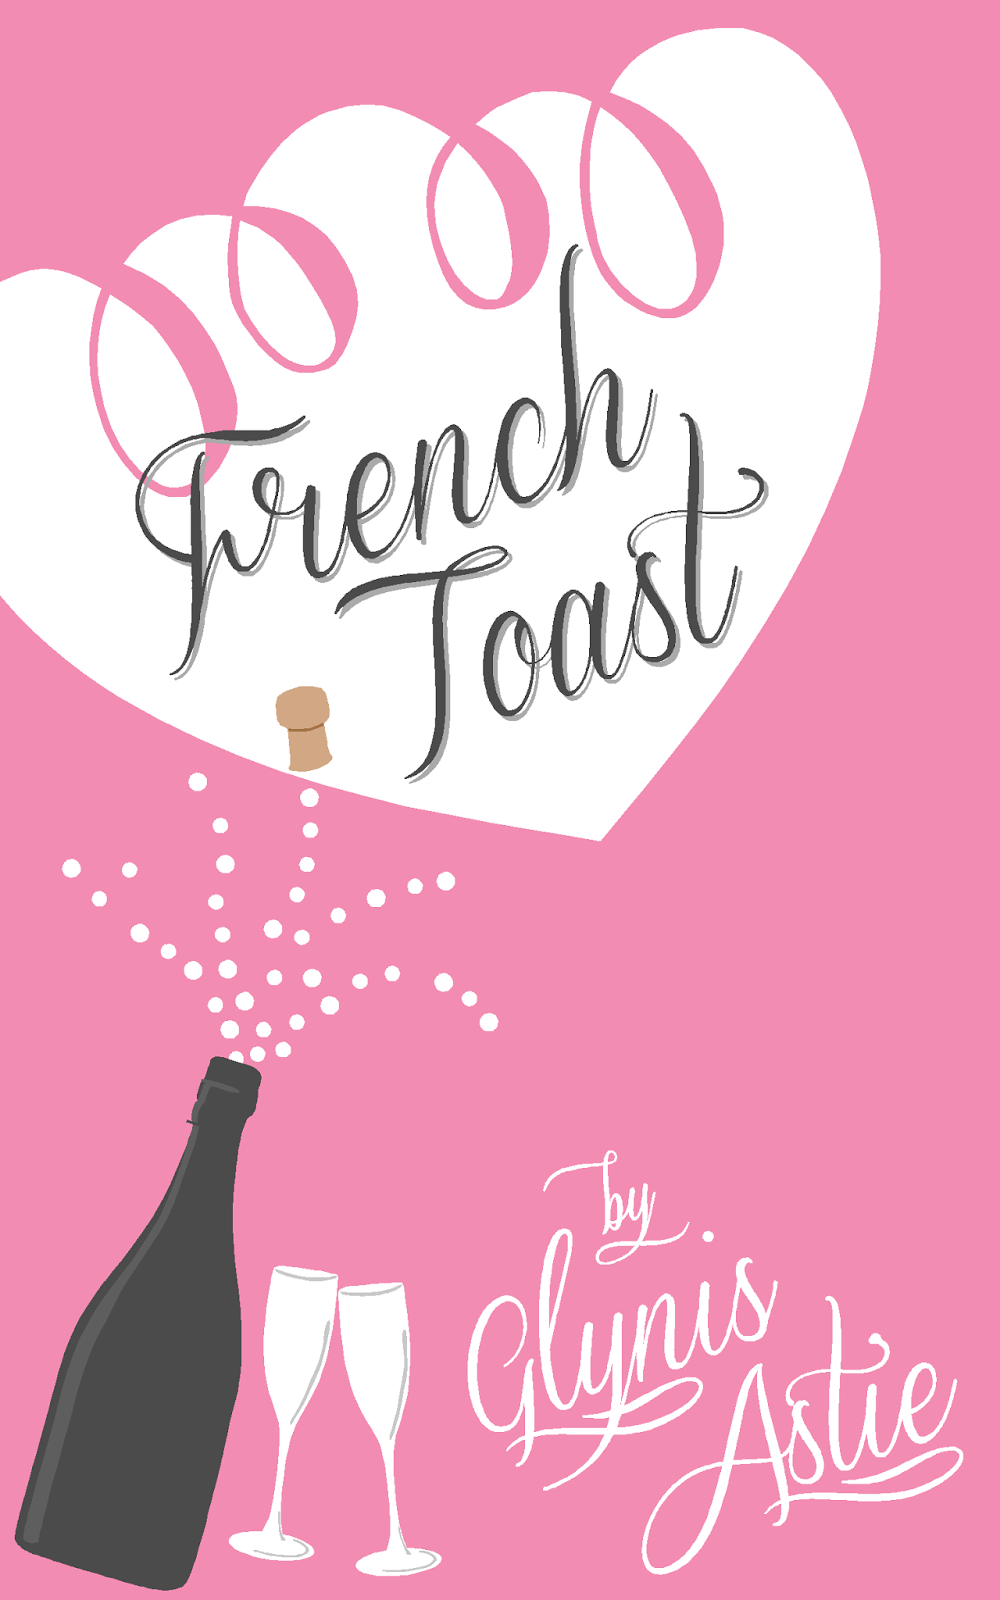 Keeping Sanity Alive >> Samantha Stroh Bailey: Release Day for French Toast by Glynis Astie